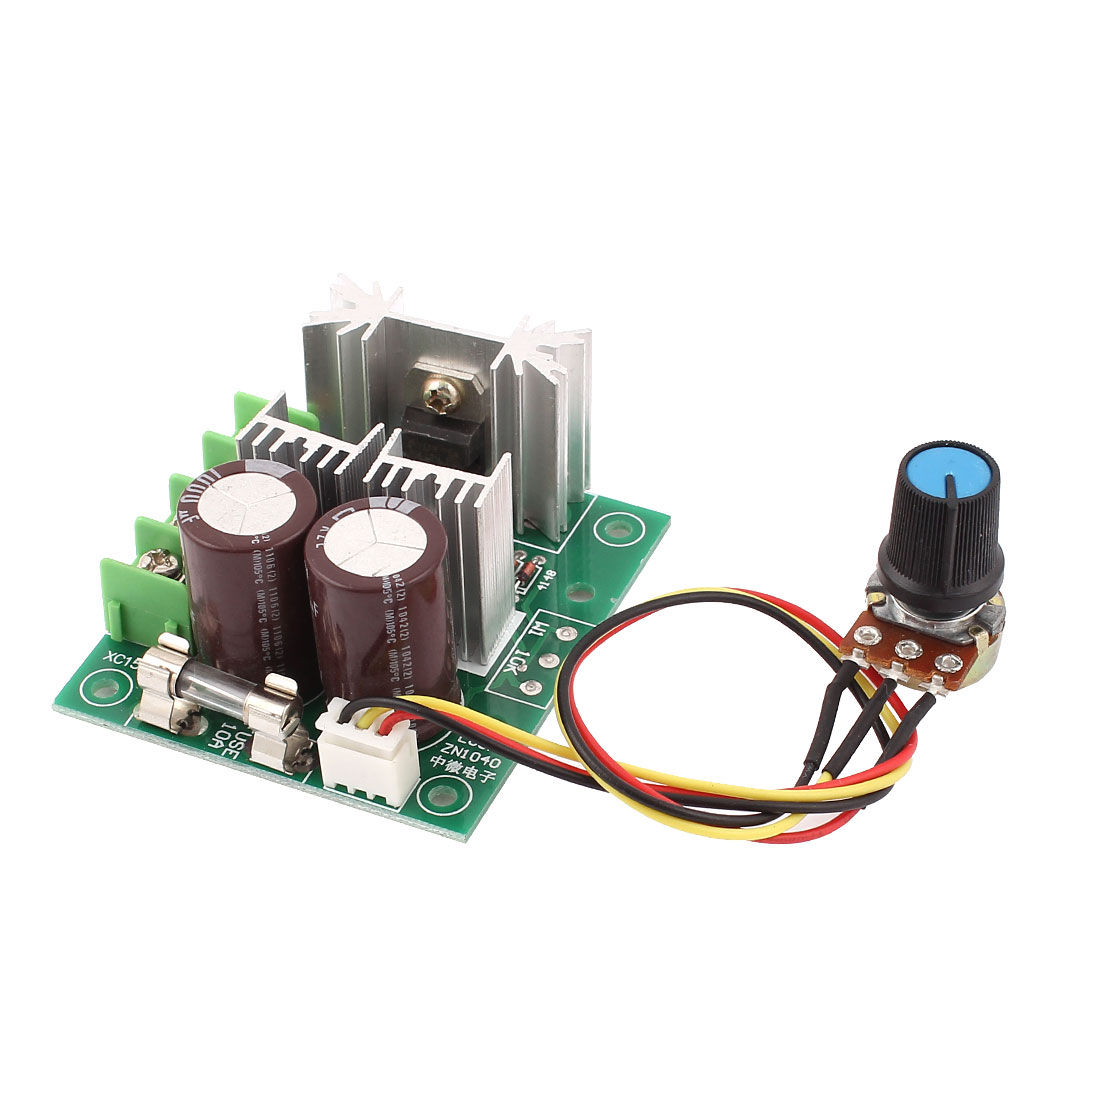 12V-40V 10A Pulse Width Modulator PWM DC Motor Speed Controller Control Switch